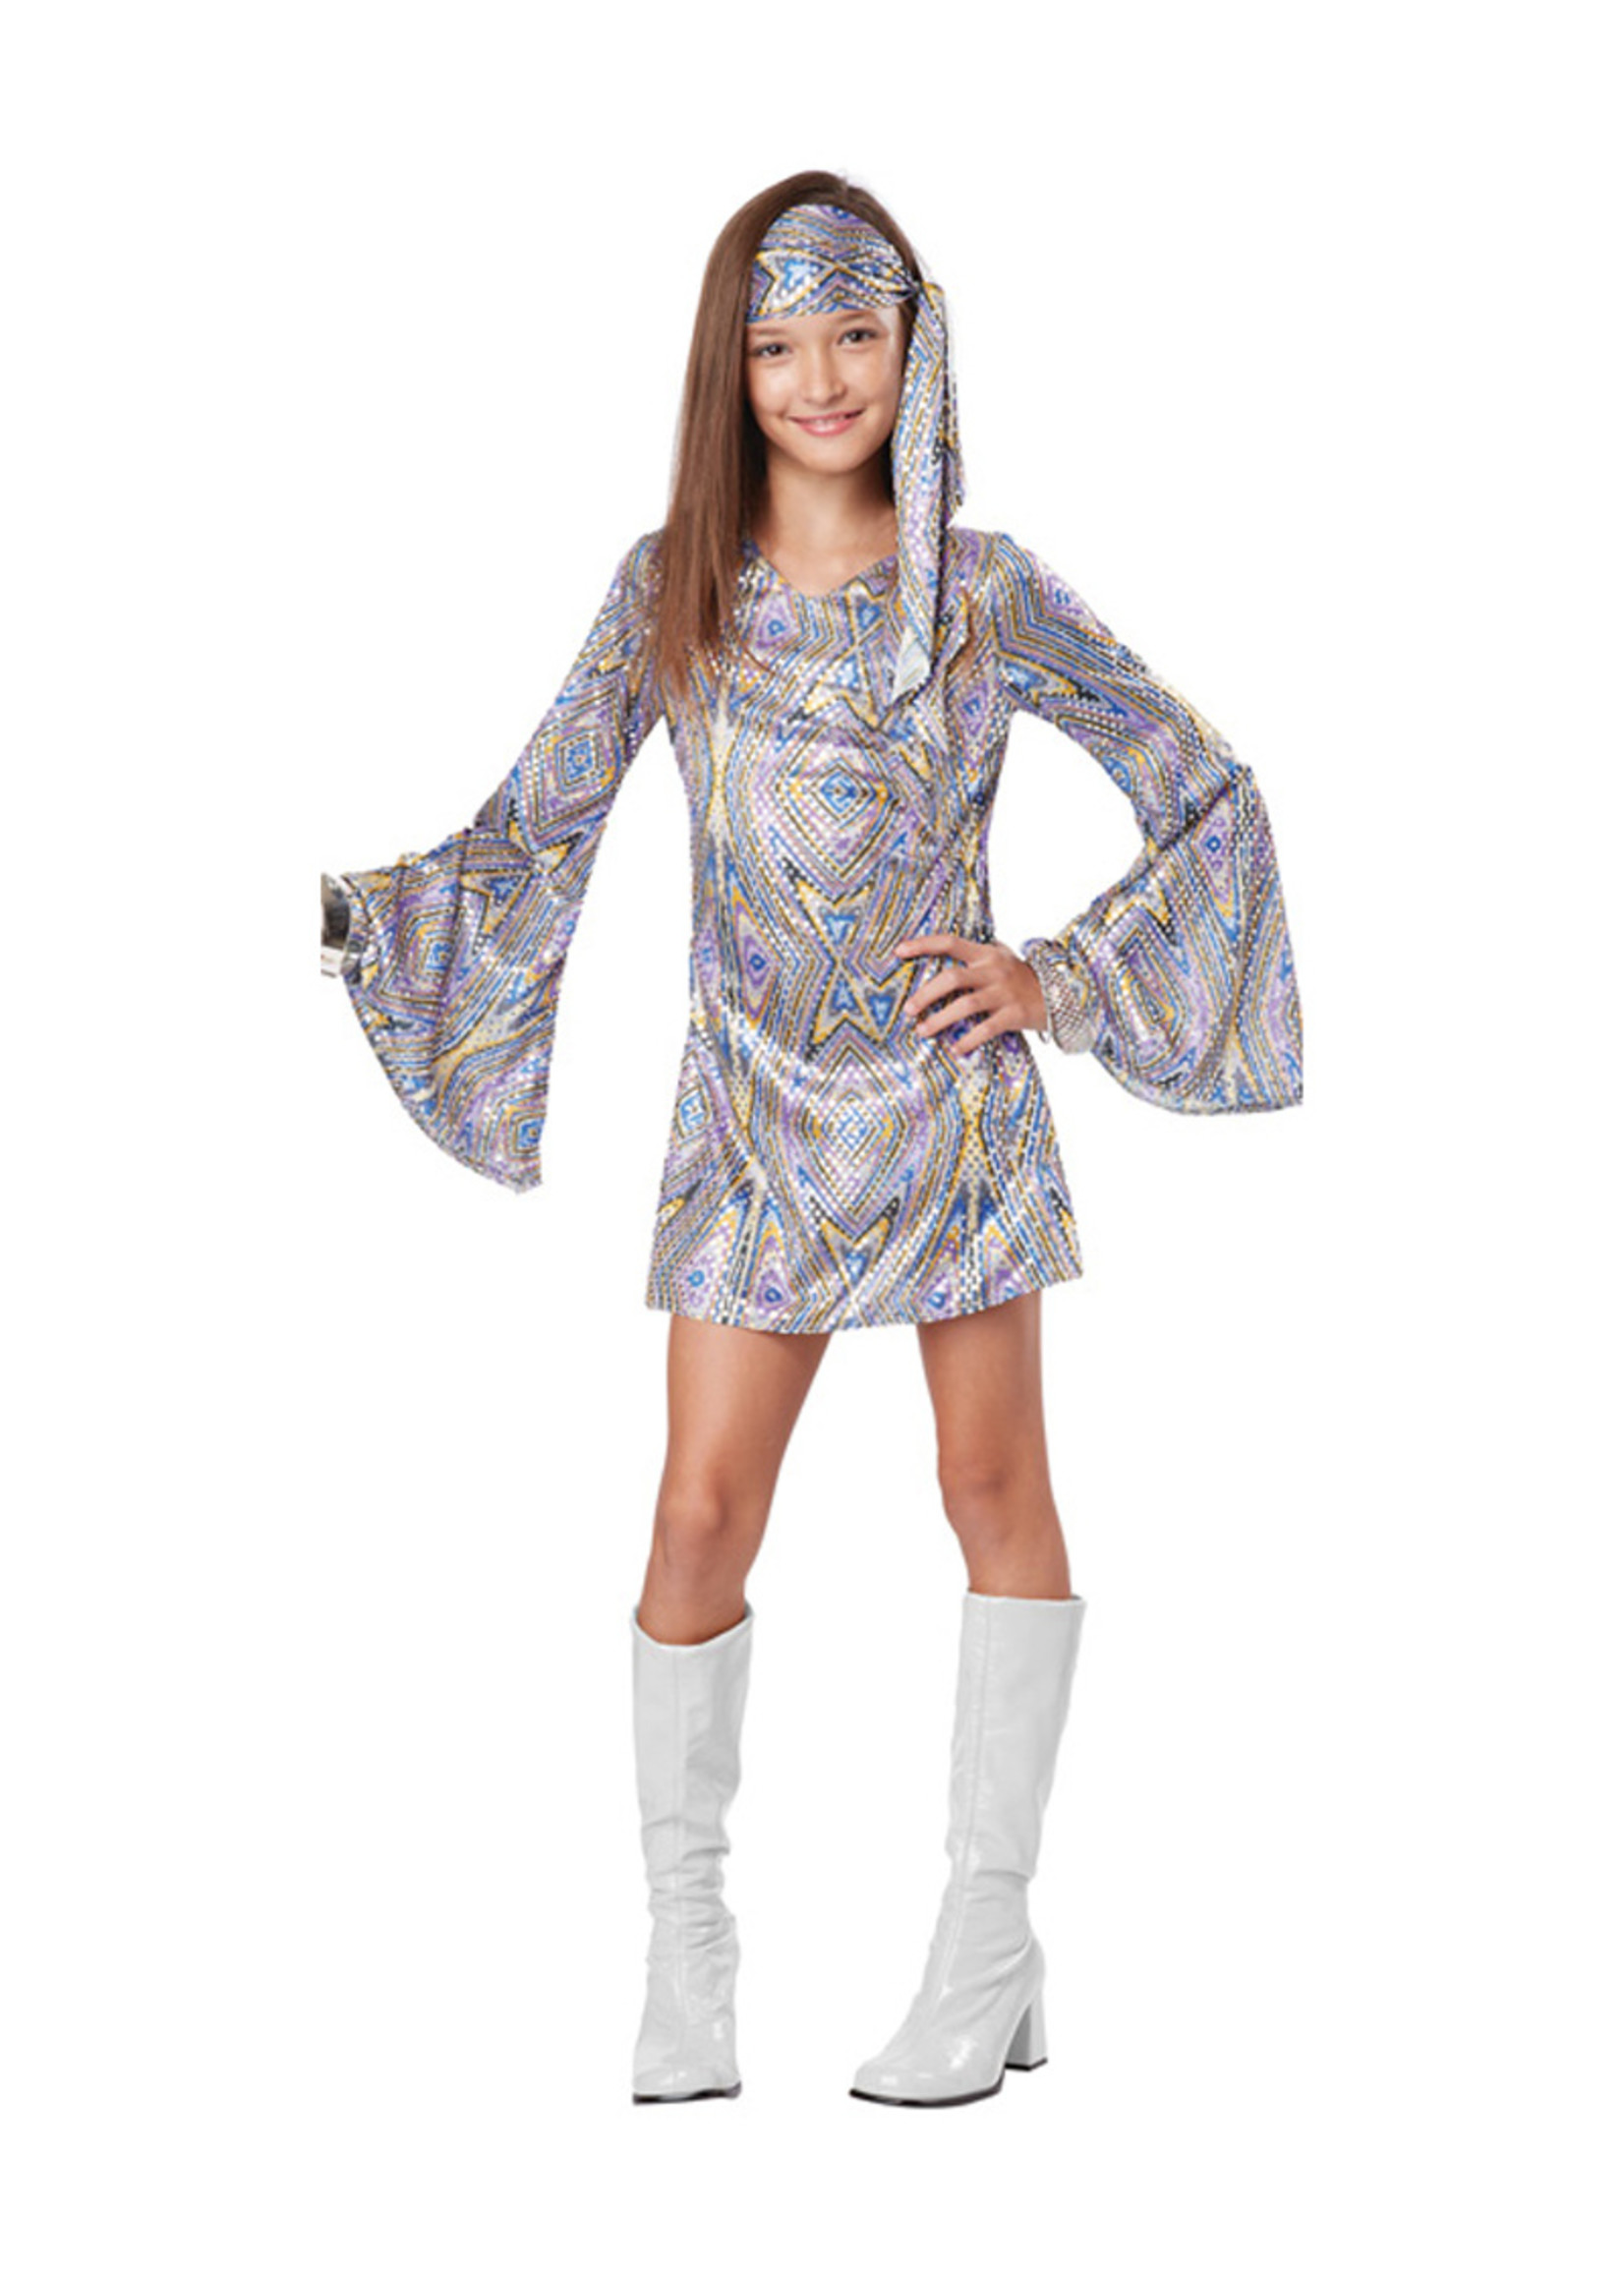 Disco Darling Costume - Girls